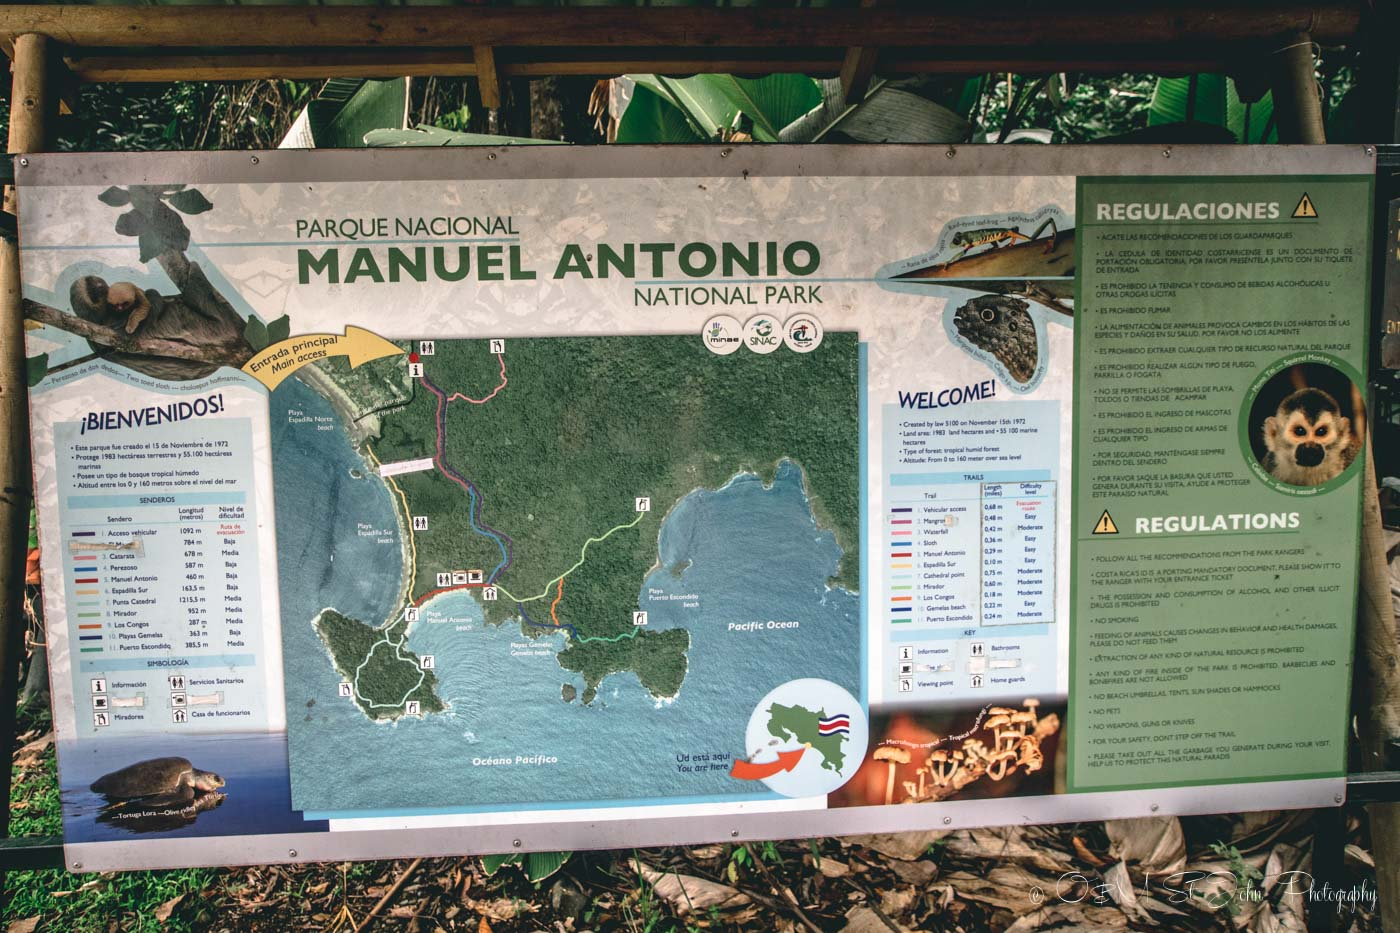 Manuel Antonio National Park: Trail map at Manuel Antonio National Park